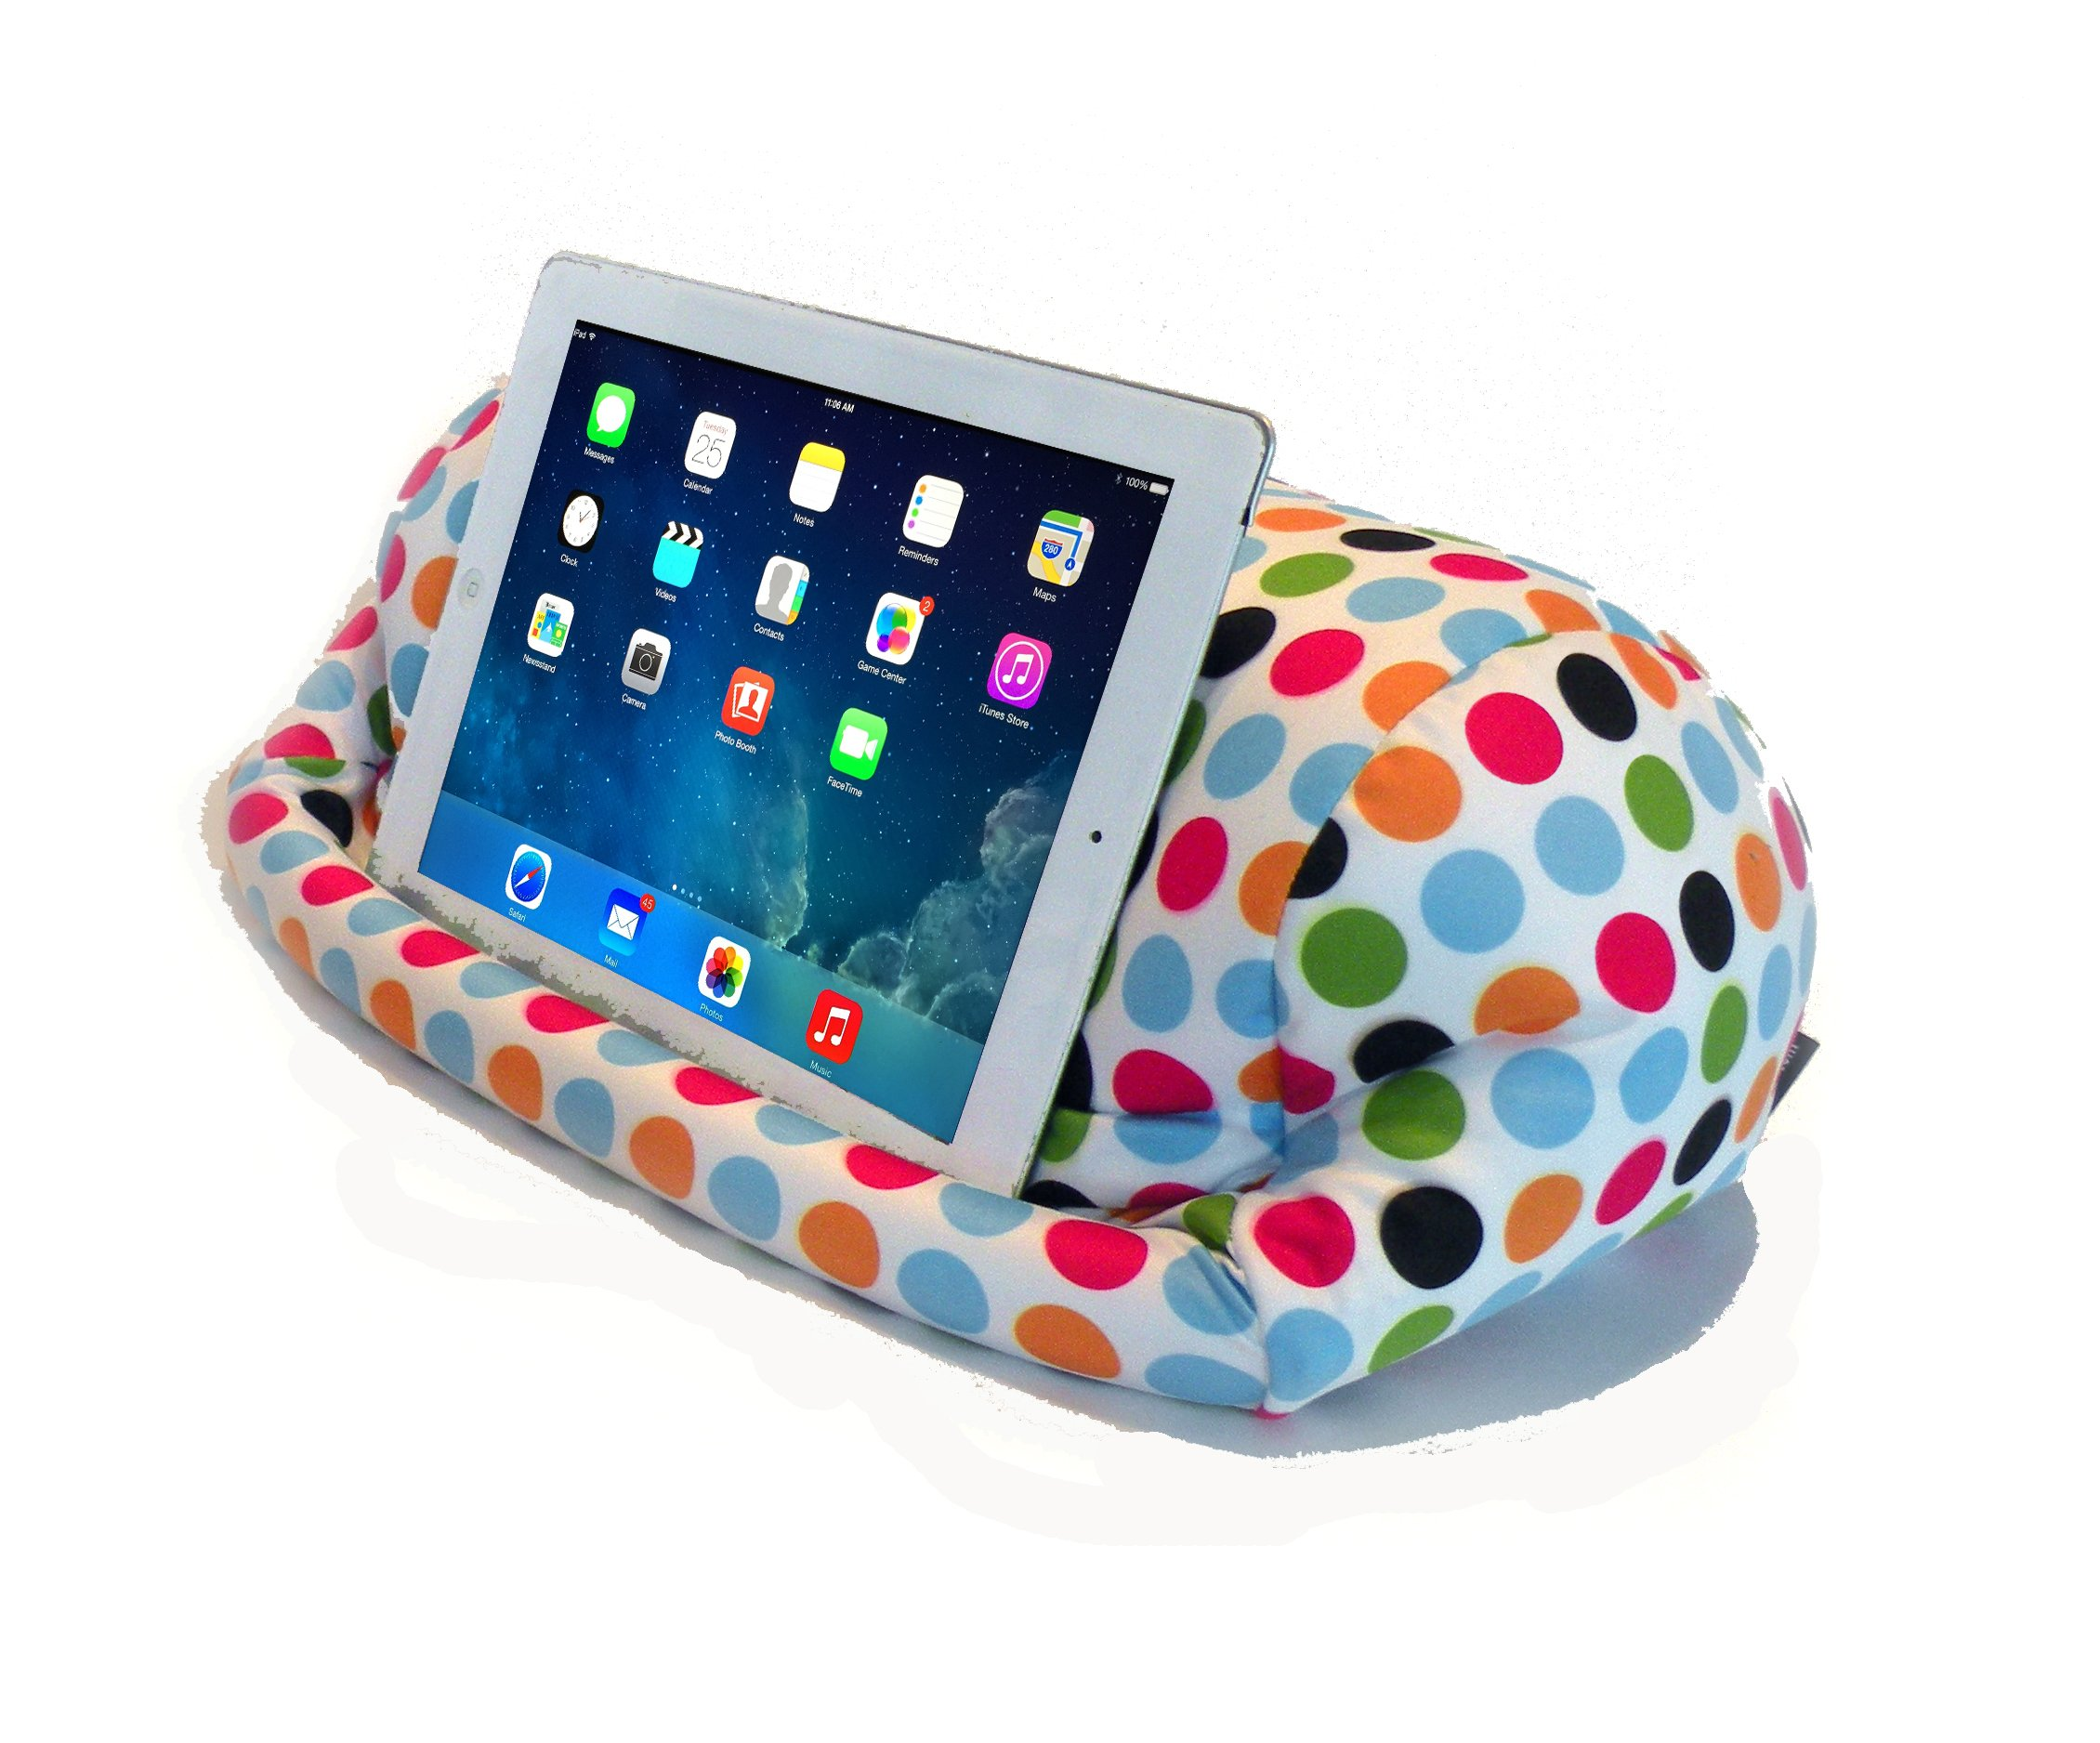 LAP PRO - Stand/Caddy, Universal Beanbag Lap Stand for iPad Pro, iPad Air,1,2,3 & all Tablets, E-Readers, Books & Magazines - Bed, Couch, Travel - Adjustable Angle; 0 - 89 deg. (Polkadot) by Renegade Concepts